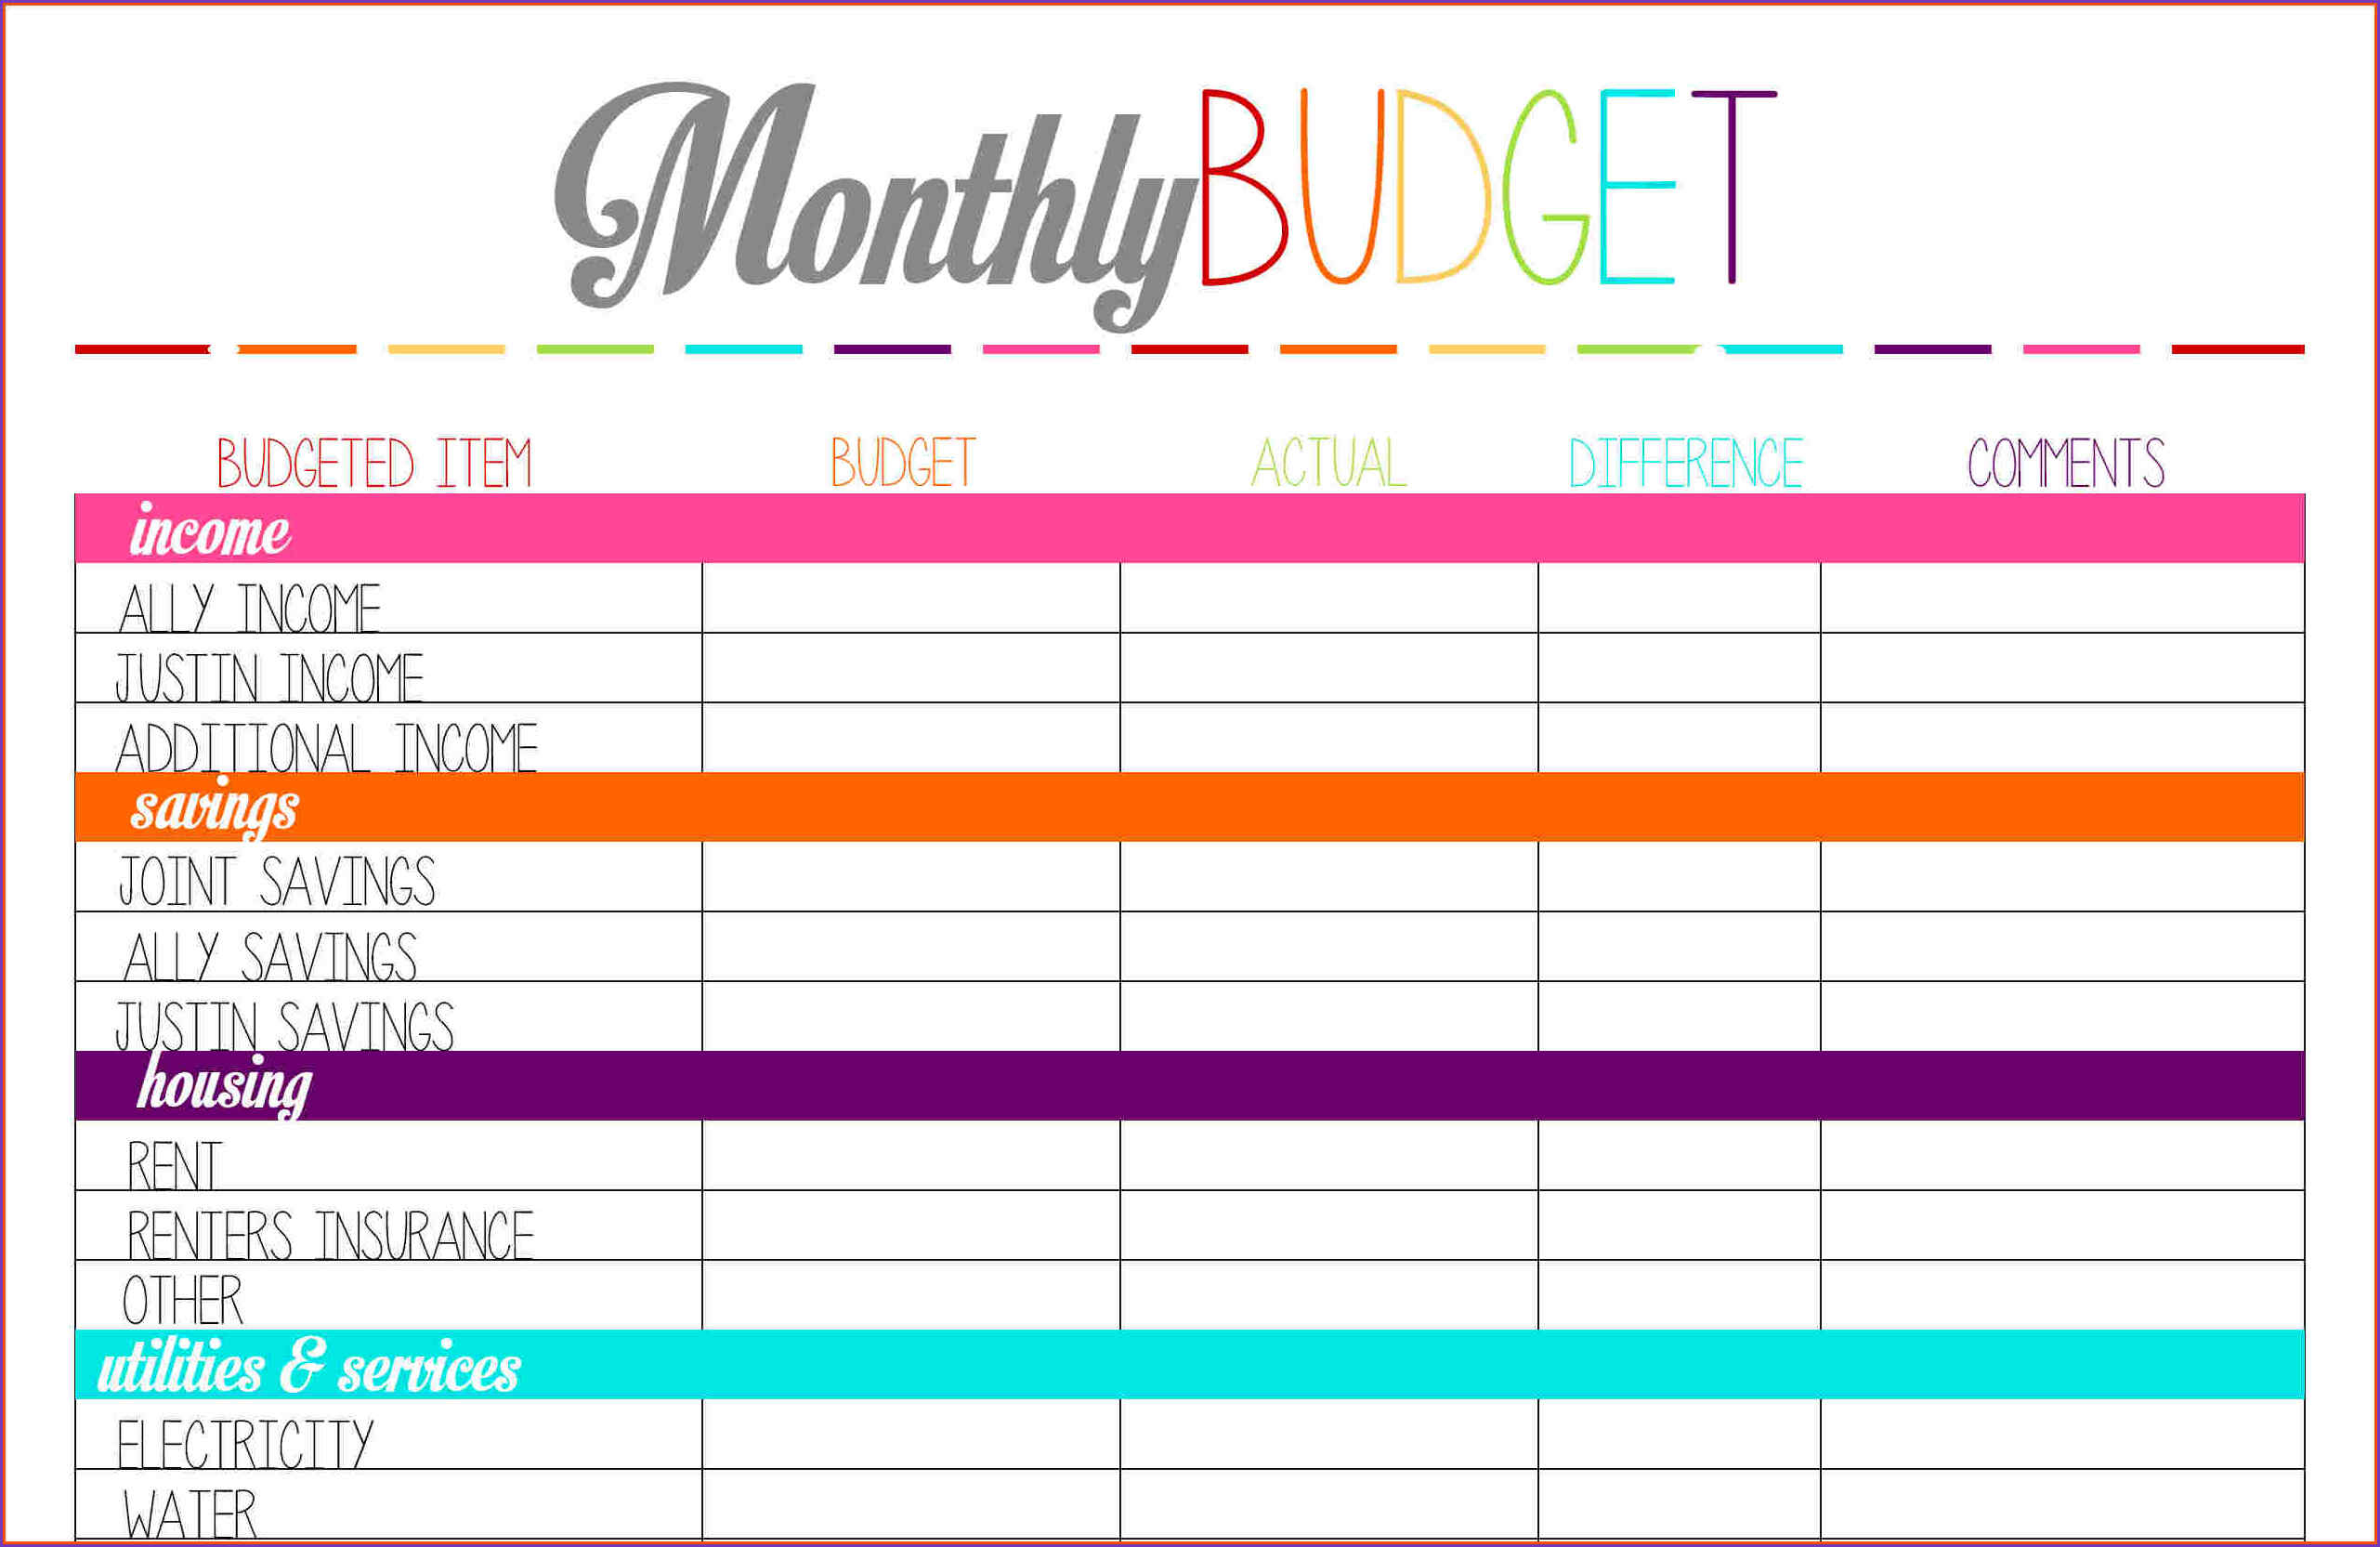 Family Et Forms Free Reunion Spreadsheet Online Planner Printable | Free Online Printable Budget Worksheet